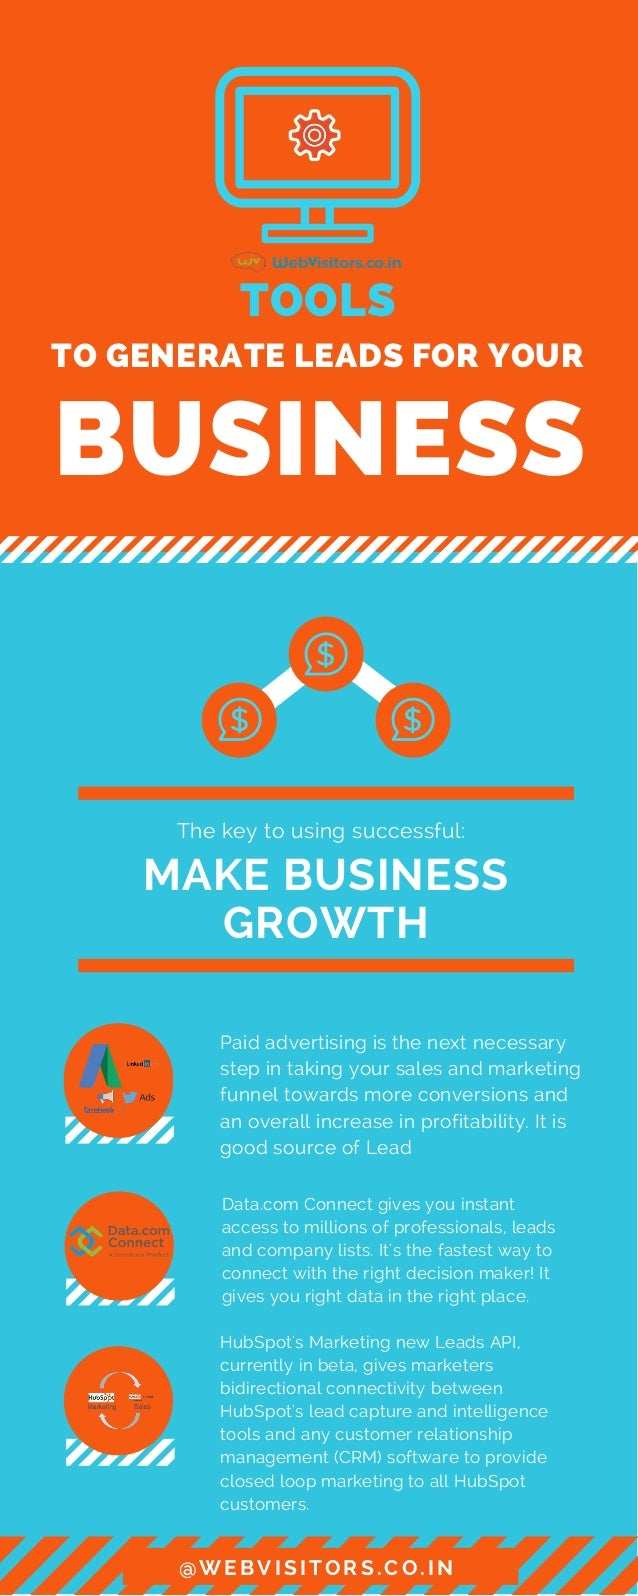 TO�GENERATE LEADS�FOR YOUR BUSINESS TOOLS MAKE�BUSINESS GROWTH The key to using successful: Paid advertising is the next n...